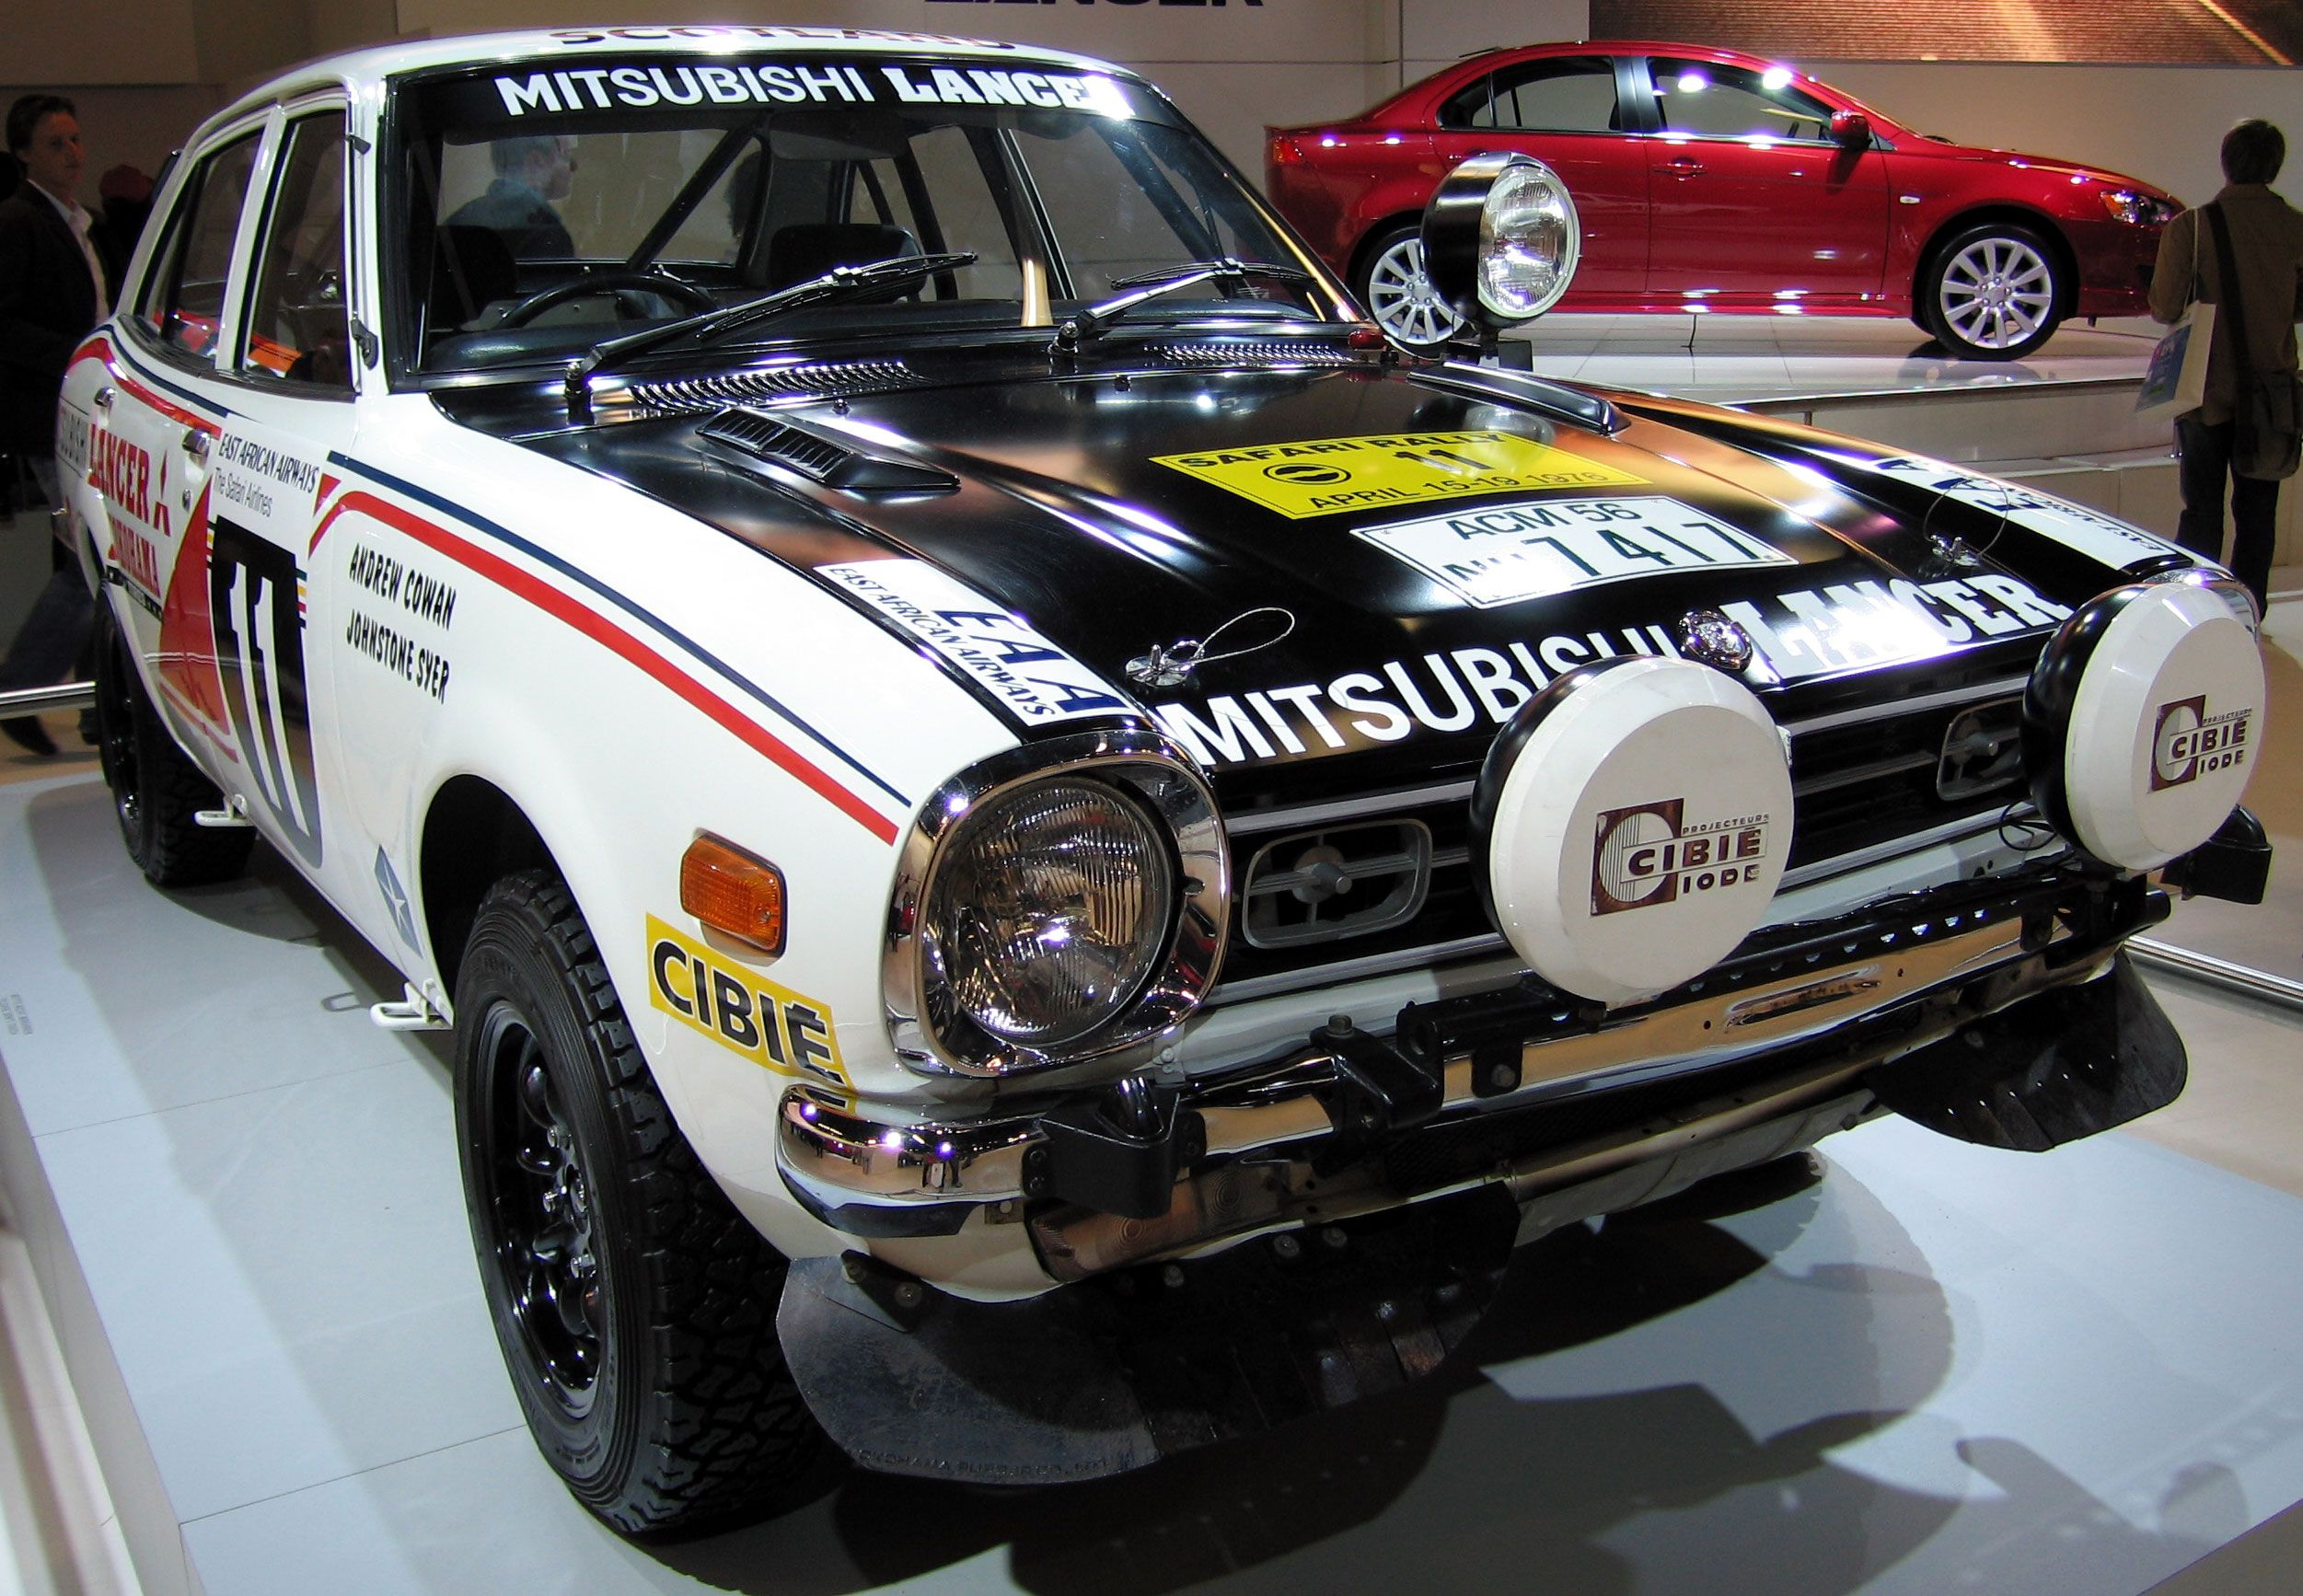 Mitsubishi Lancer Safari rally